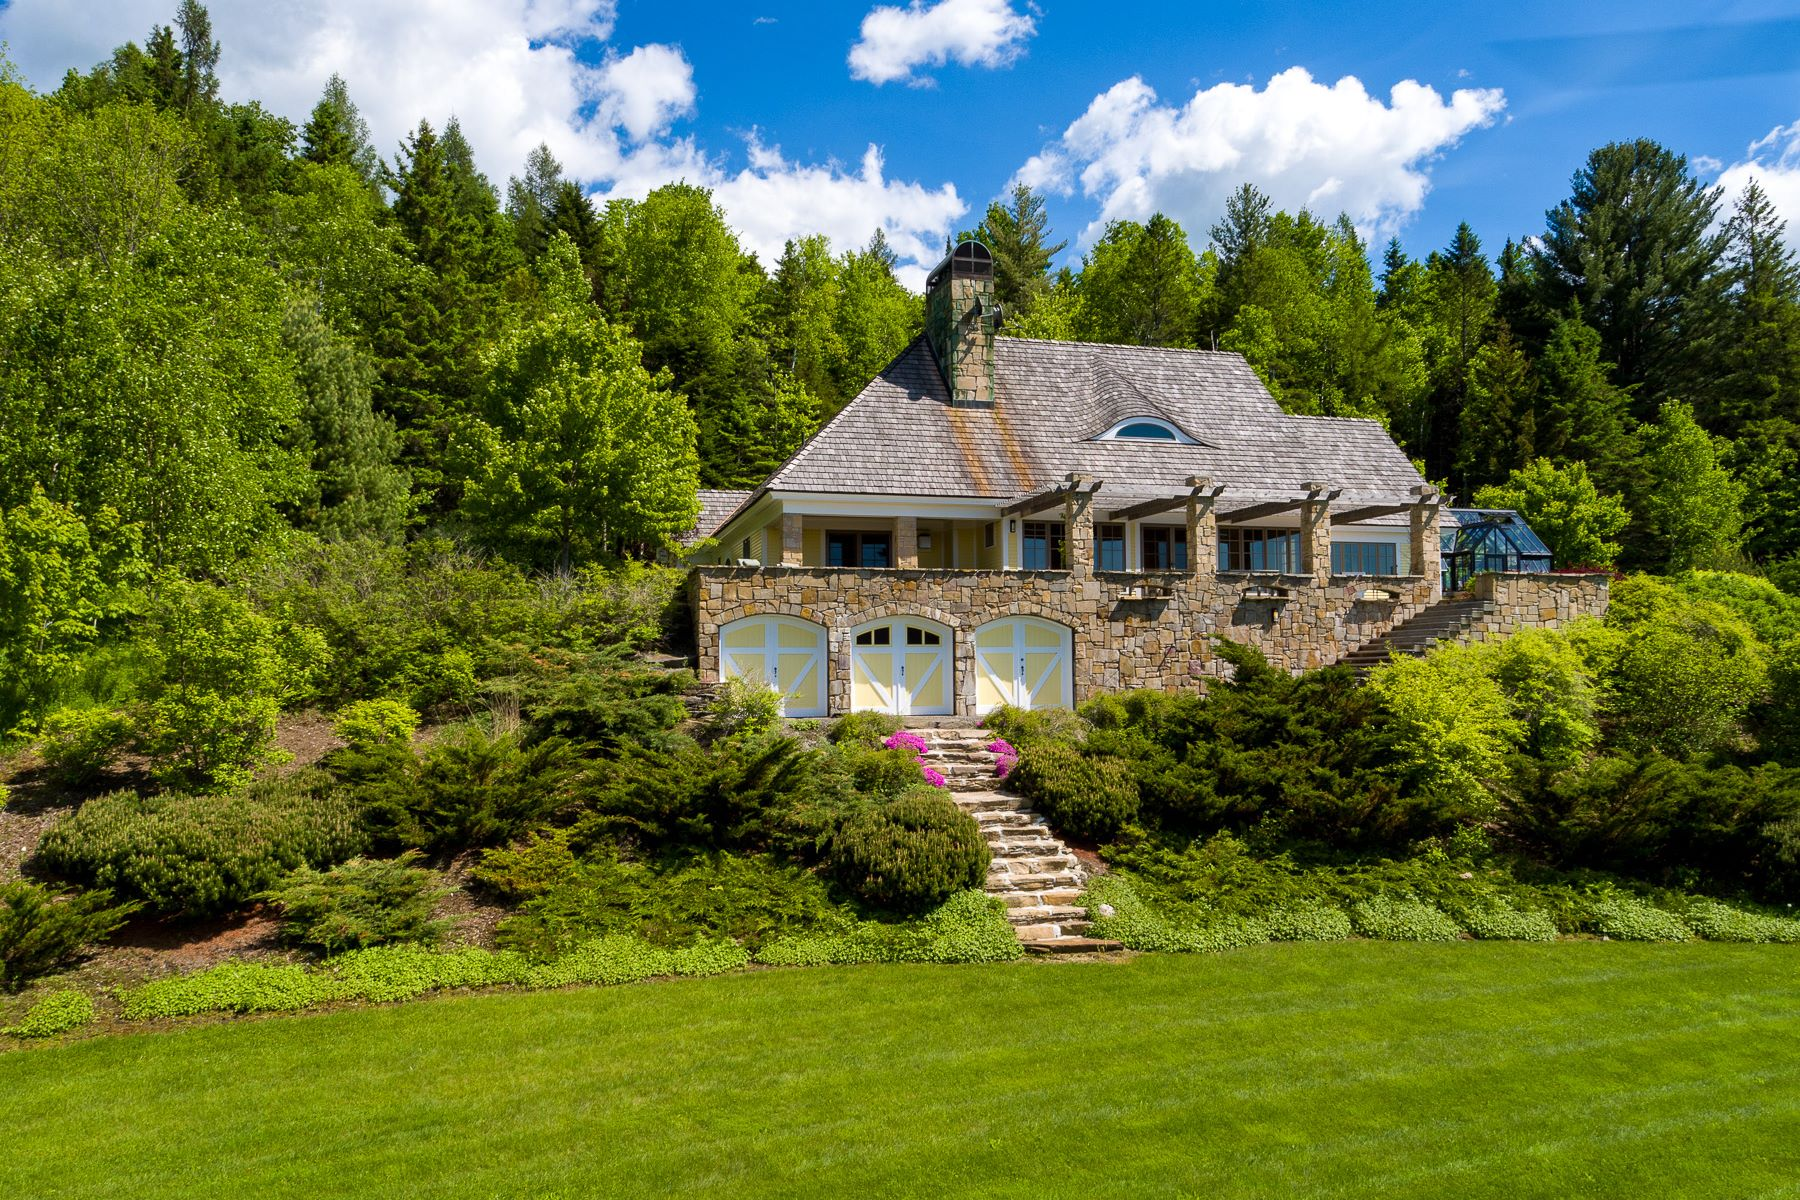 Single Family Homes for Sale at Ash Pond Estate 281 Barnes Brook Rd Kirby, Vermont 05851 United States